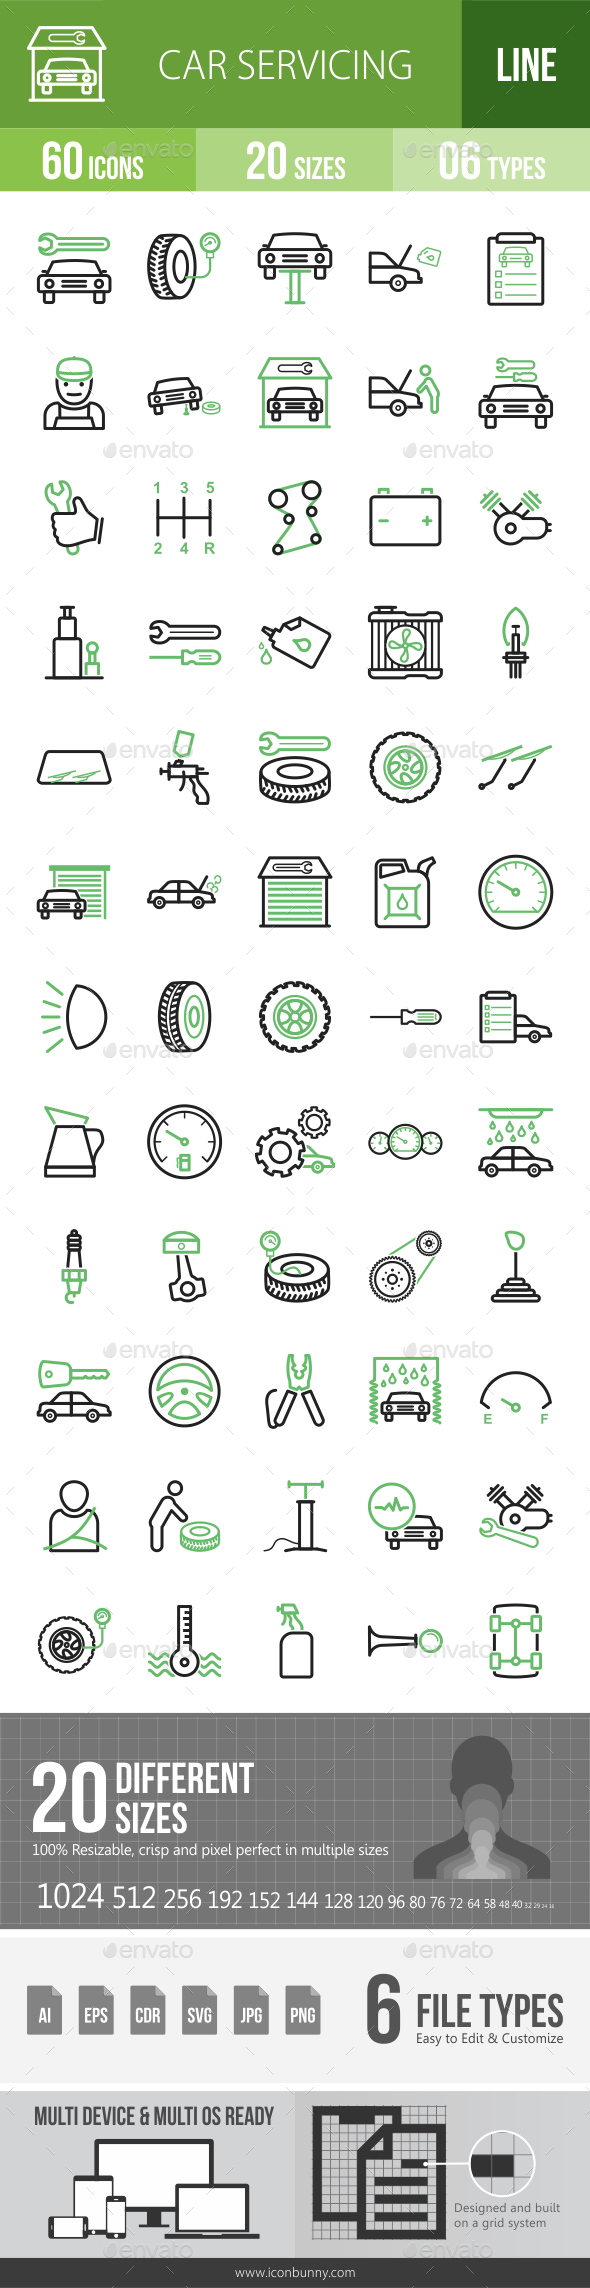 Car Servicing Line Green & Black Icons - Icons